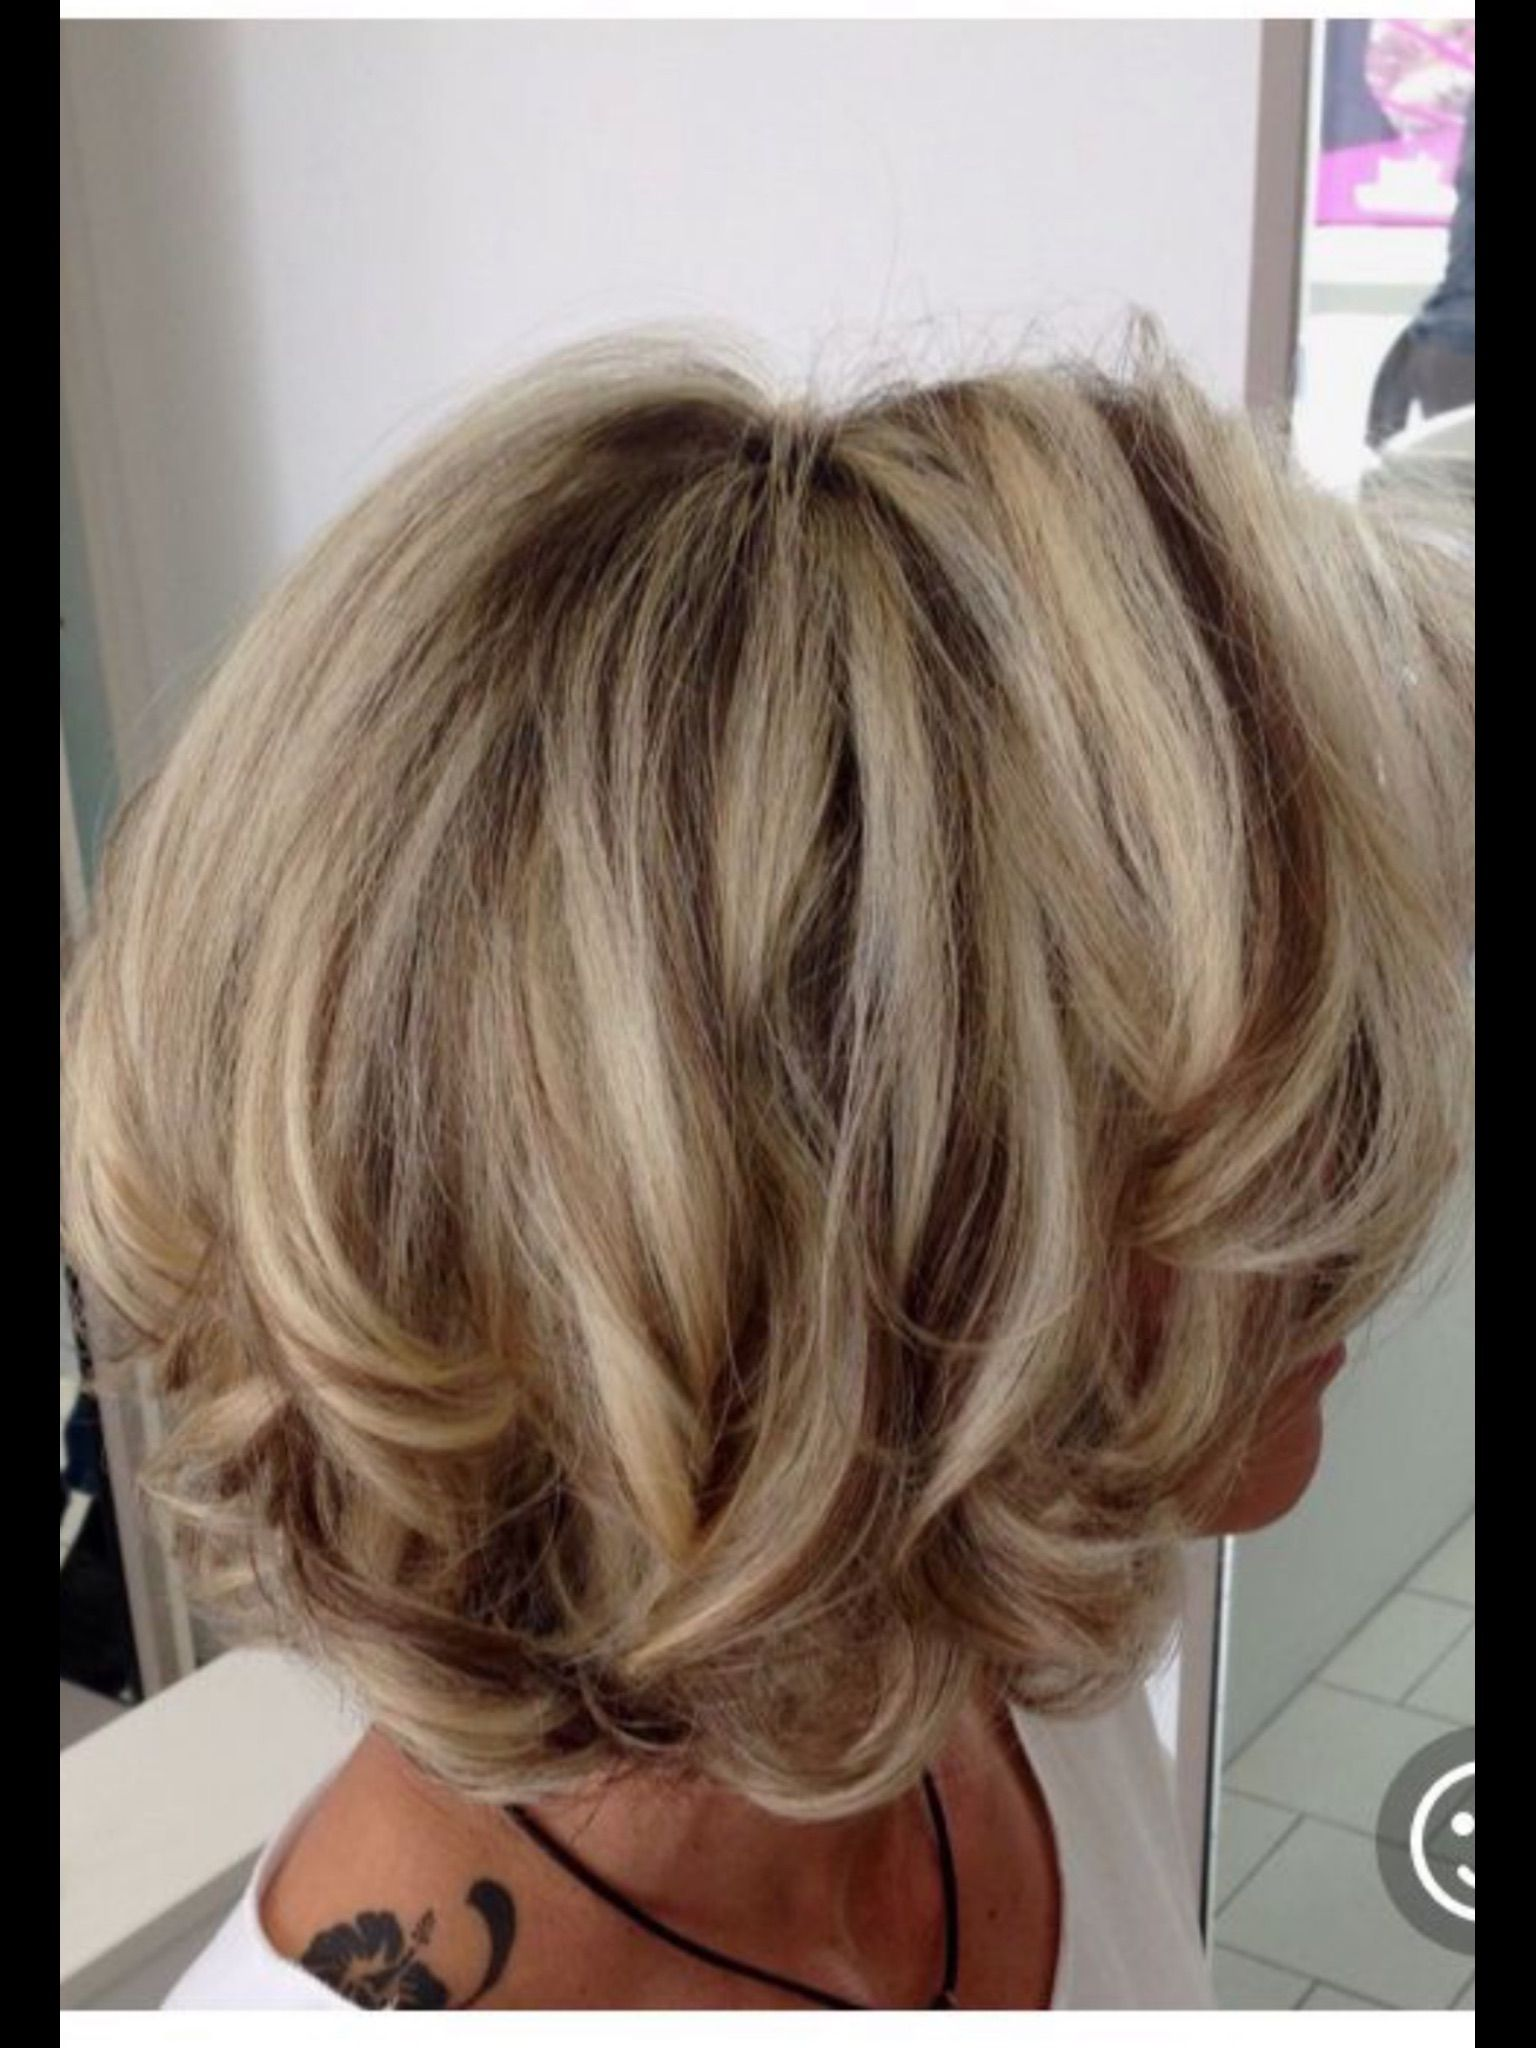 Hairstylesforwomen Long Hair Styles Thick Hair Styles Popular Short Haircuts